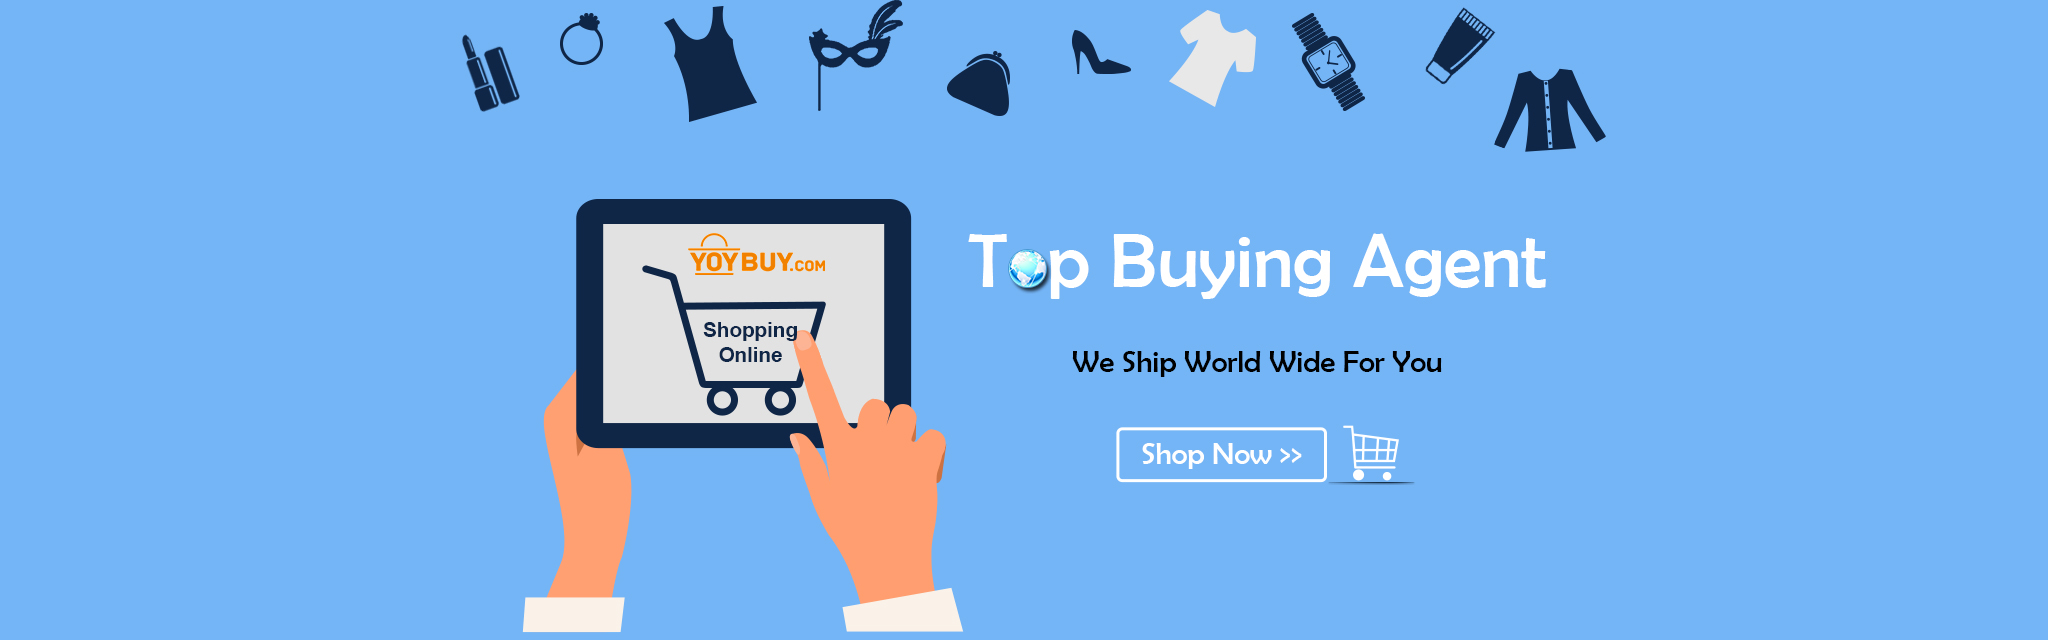 Your Top Buying Agent ! We ship worldwide for you.Our service is above everything. Shop Now with us